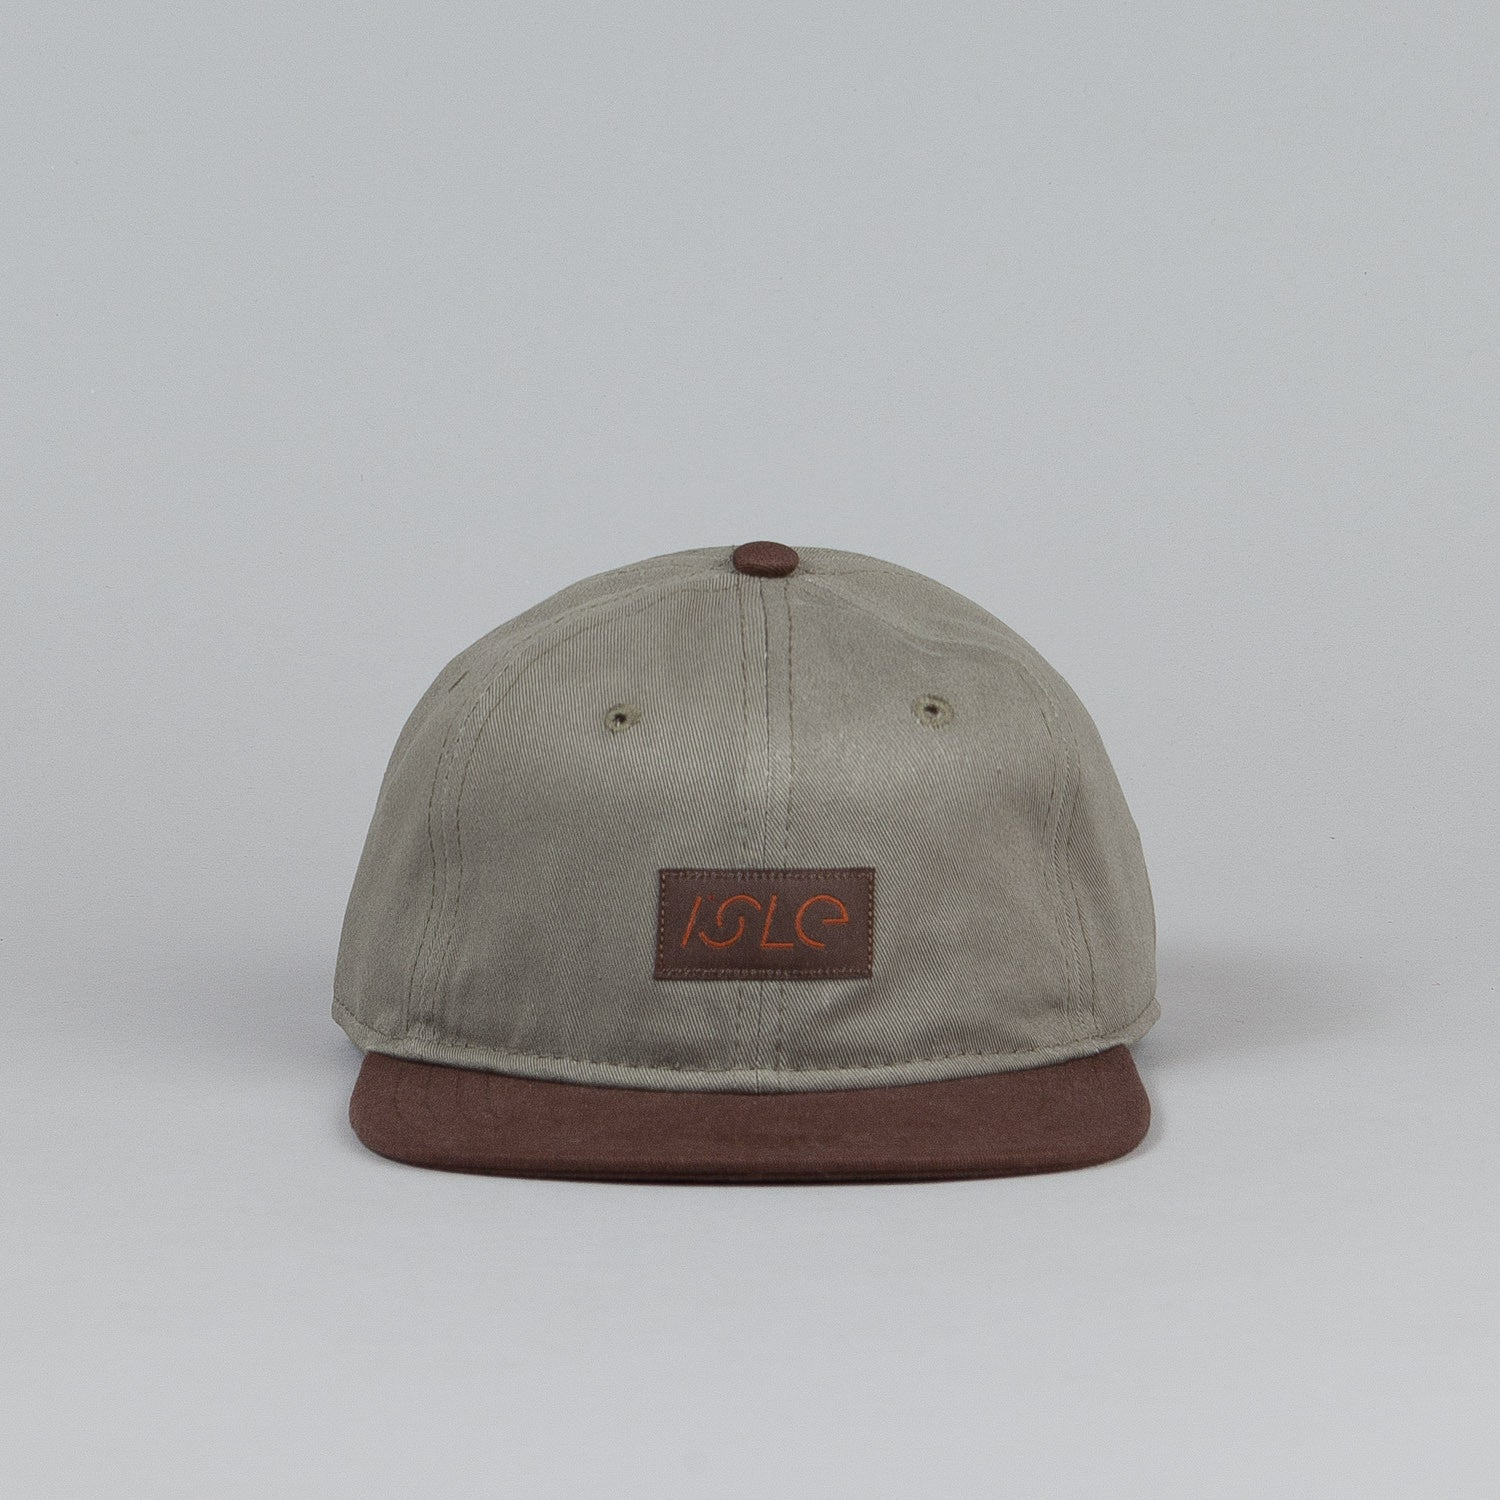 Isle Cap Tan/Brown